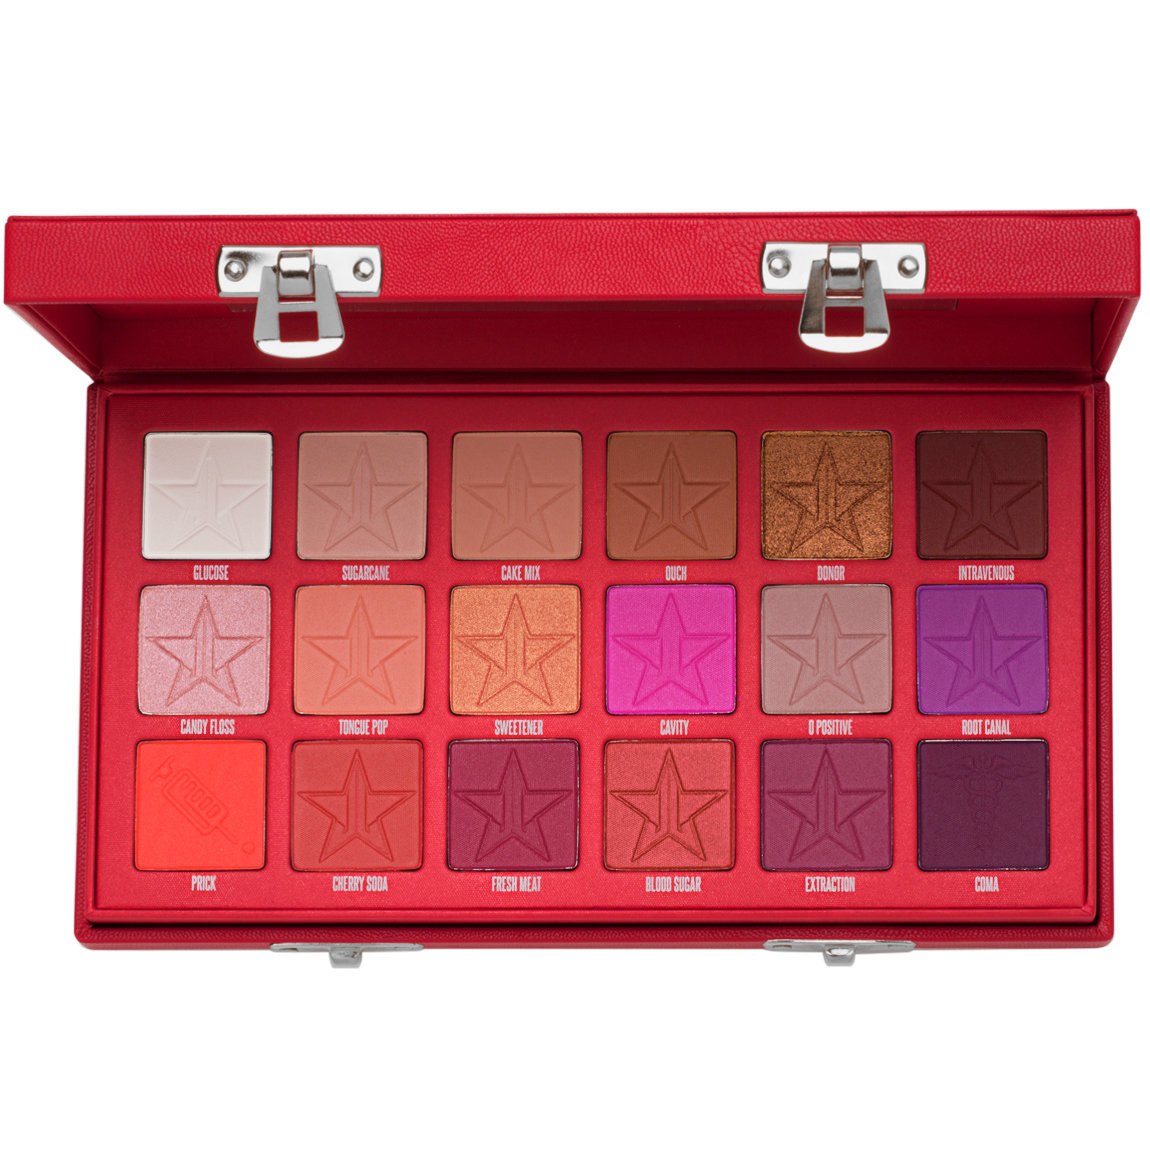 Jeffree Star Cosmetics Blood Sugar Eyeshadow Palette product swatch.